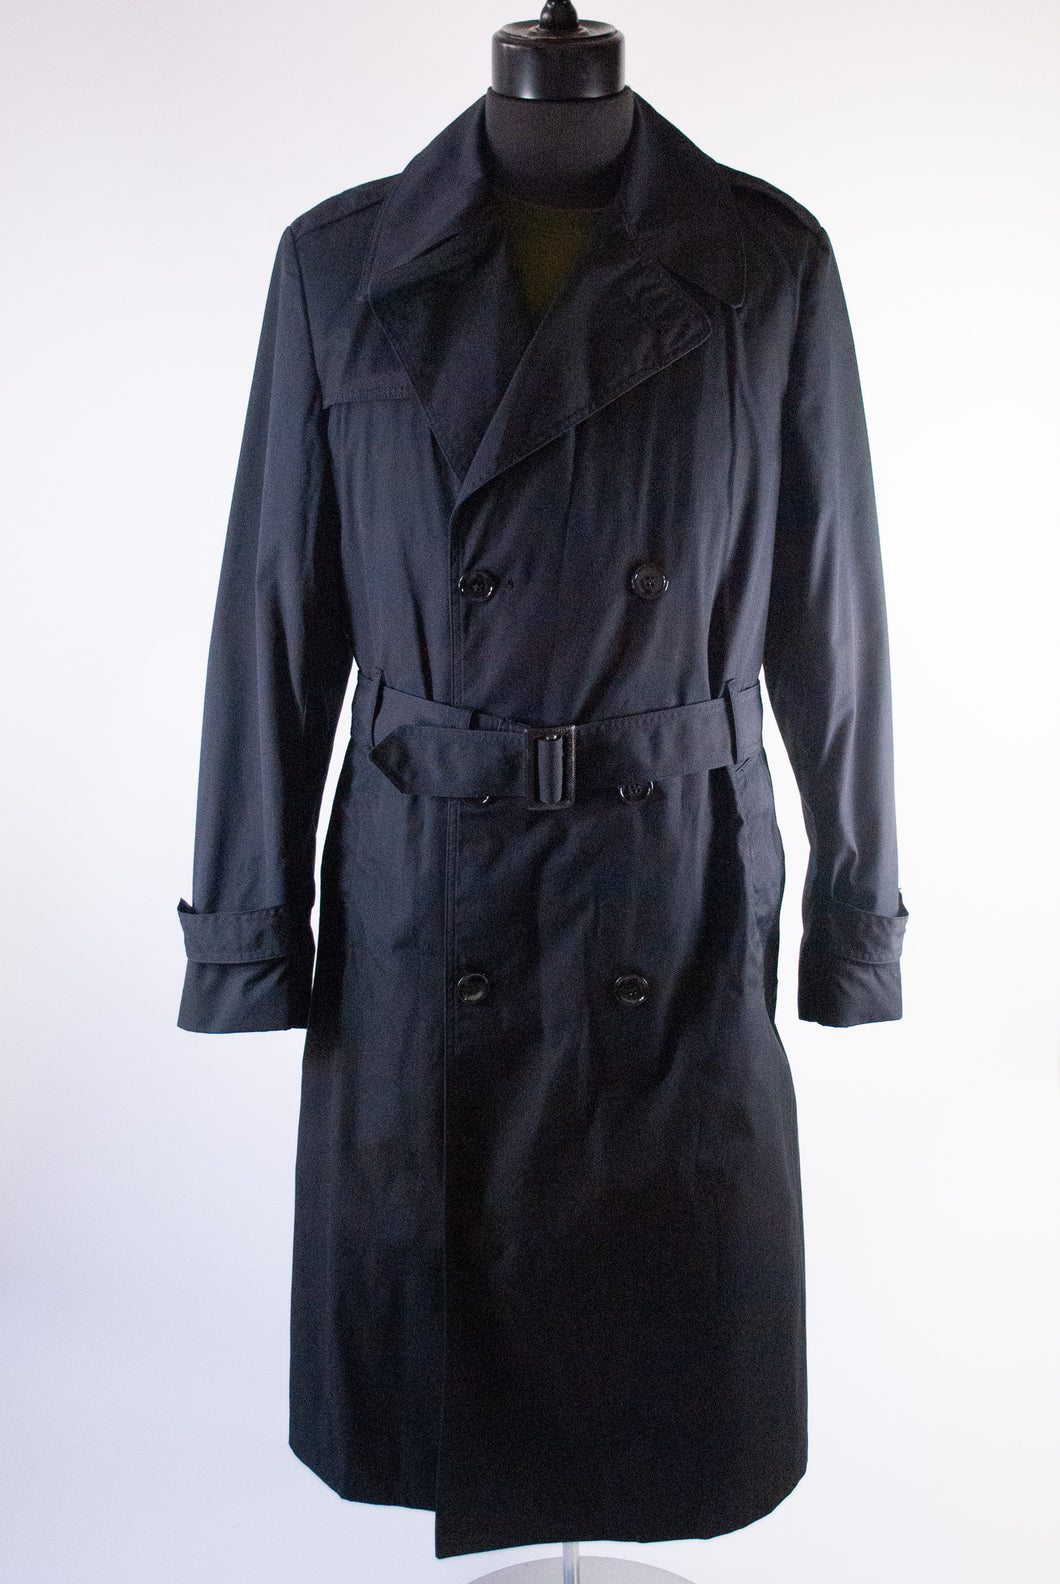 Black Belted Military Trench, Med-Lrg